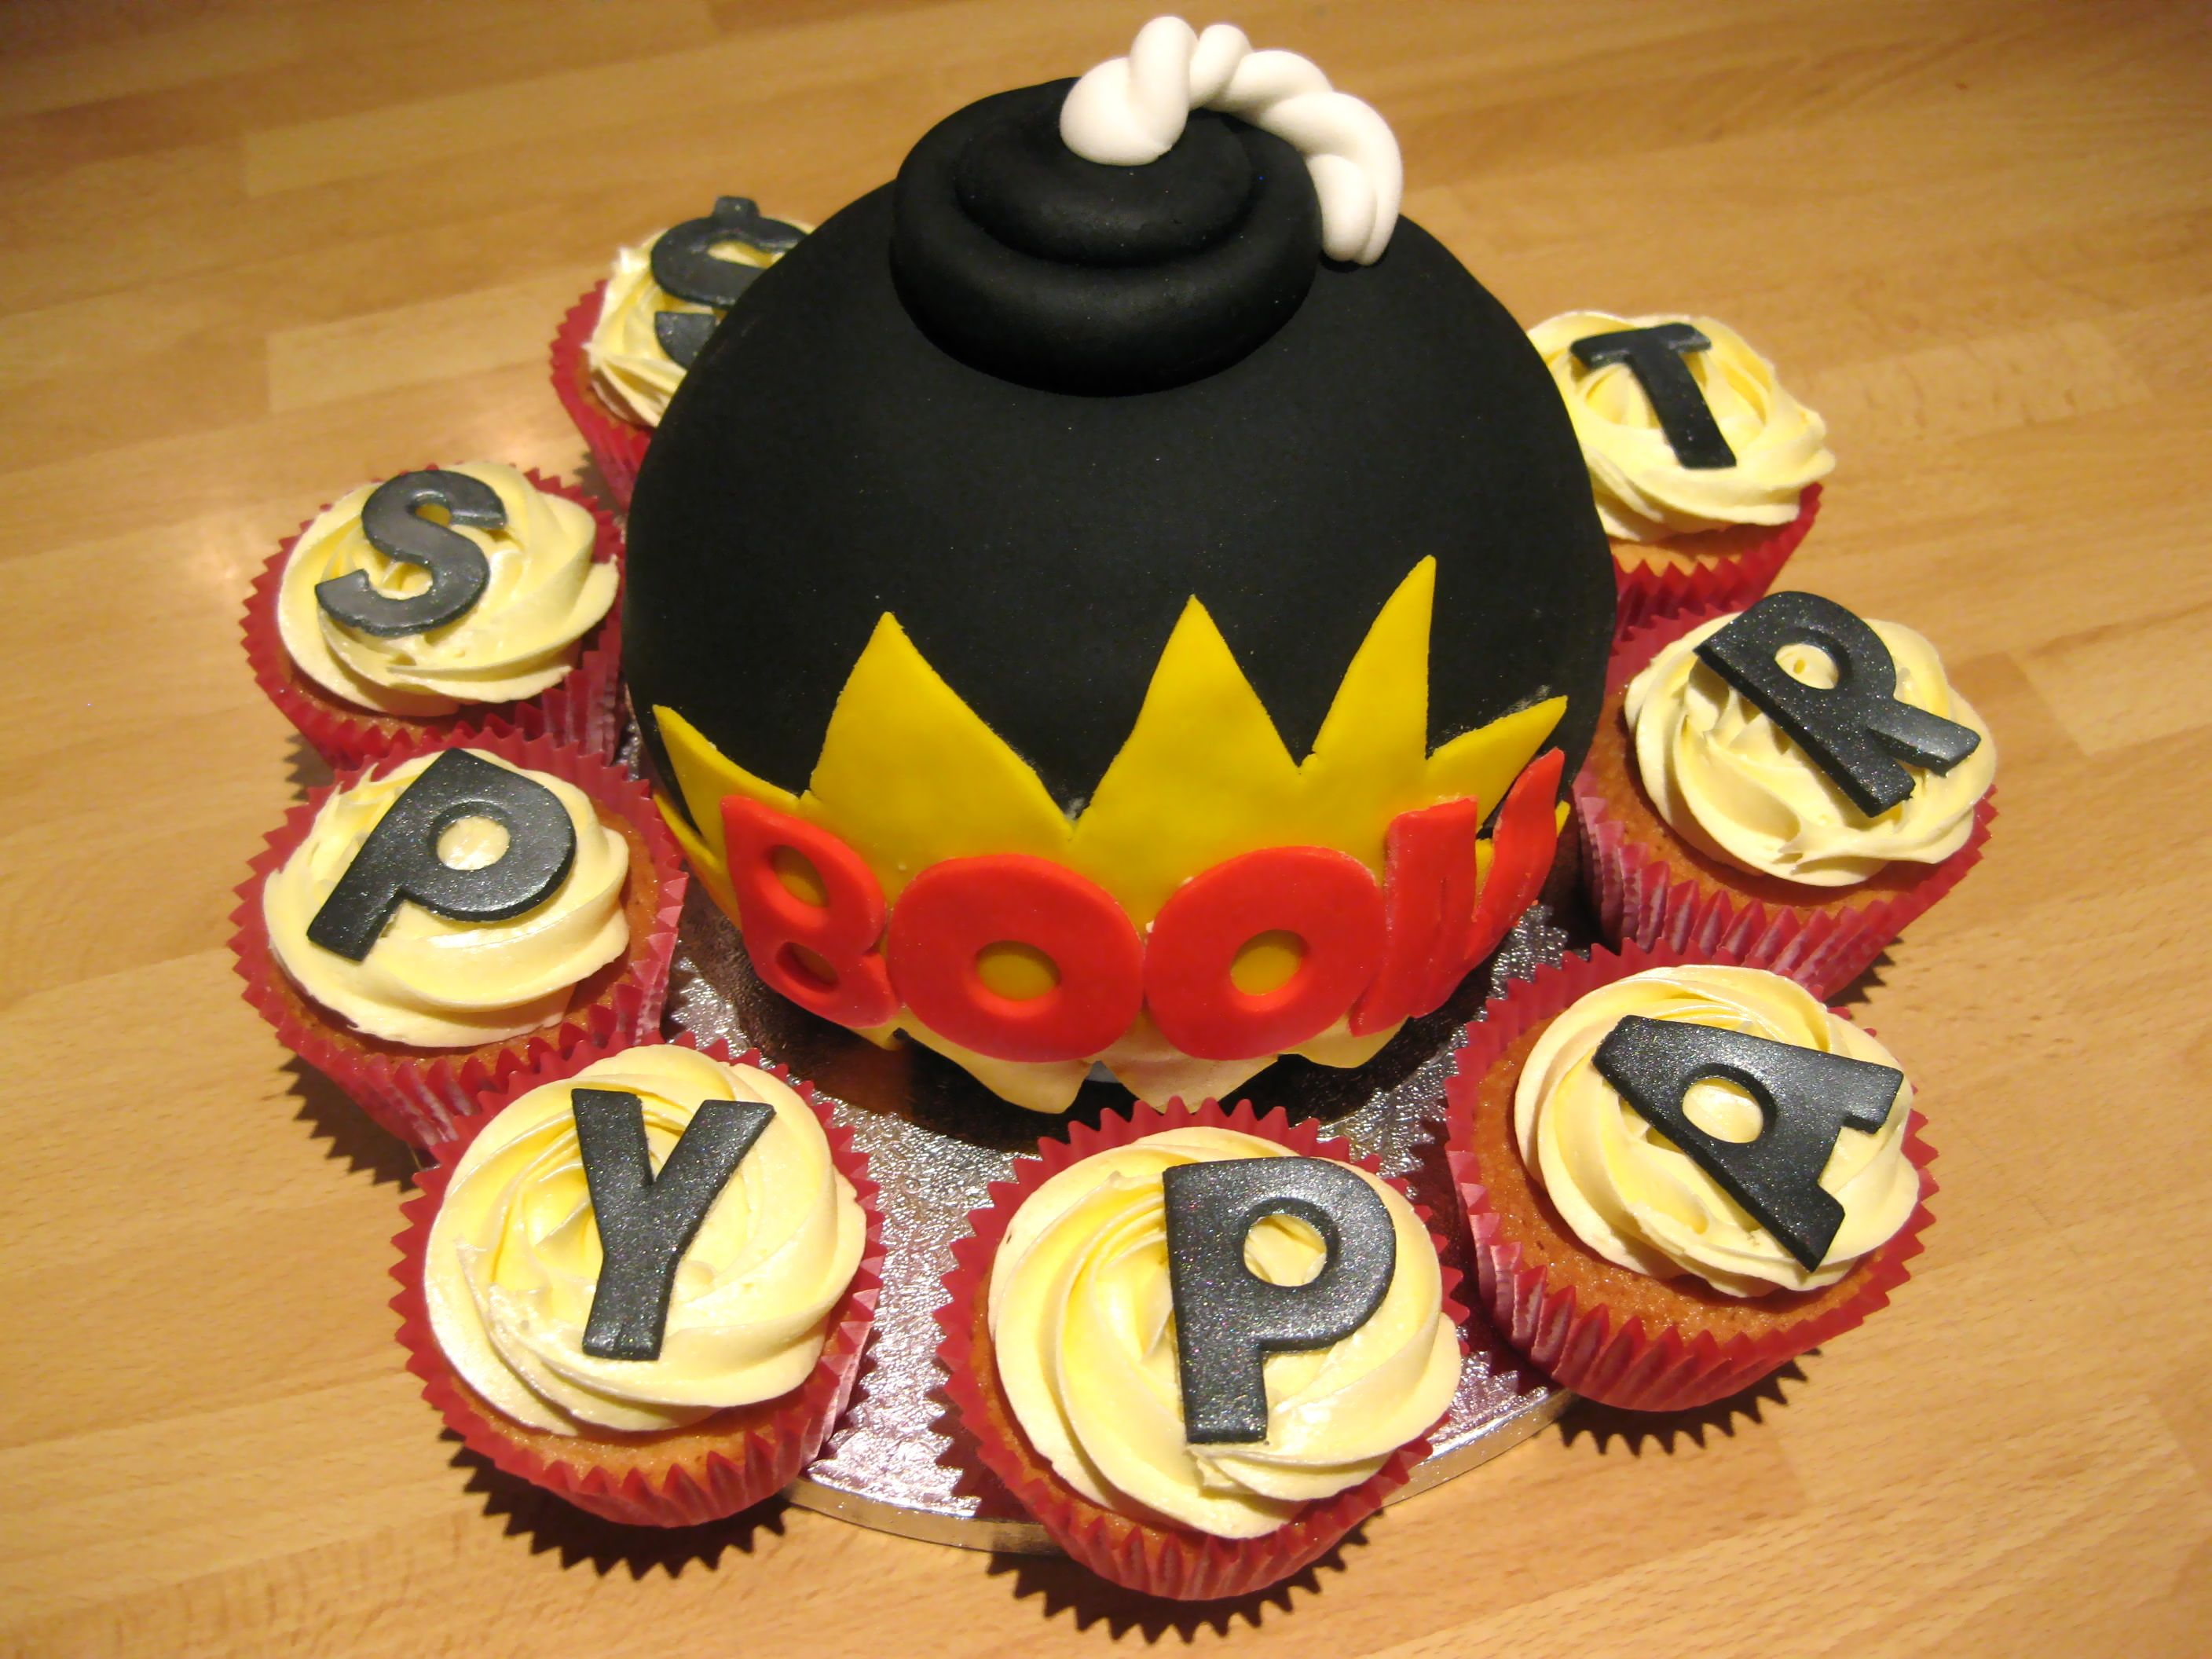 Magnificent Spy Party Bomb Cake How To Create A Fugative The Cia Pentagon Funny Birthday Cards Online Inifodamsfinfo